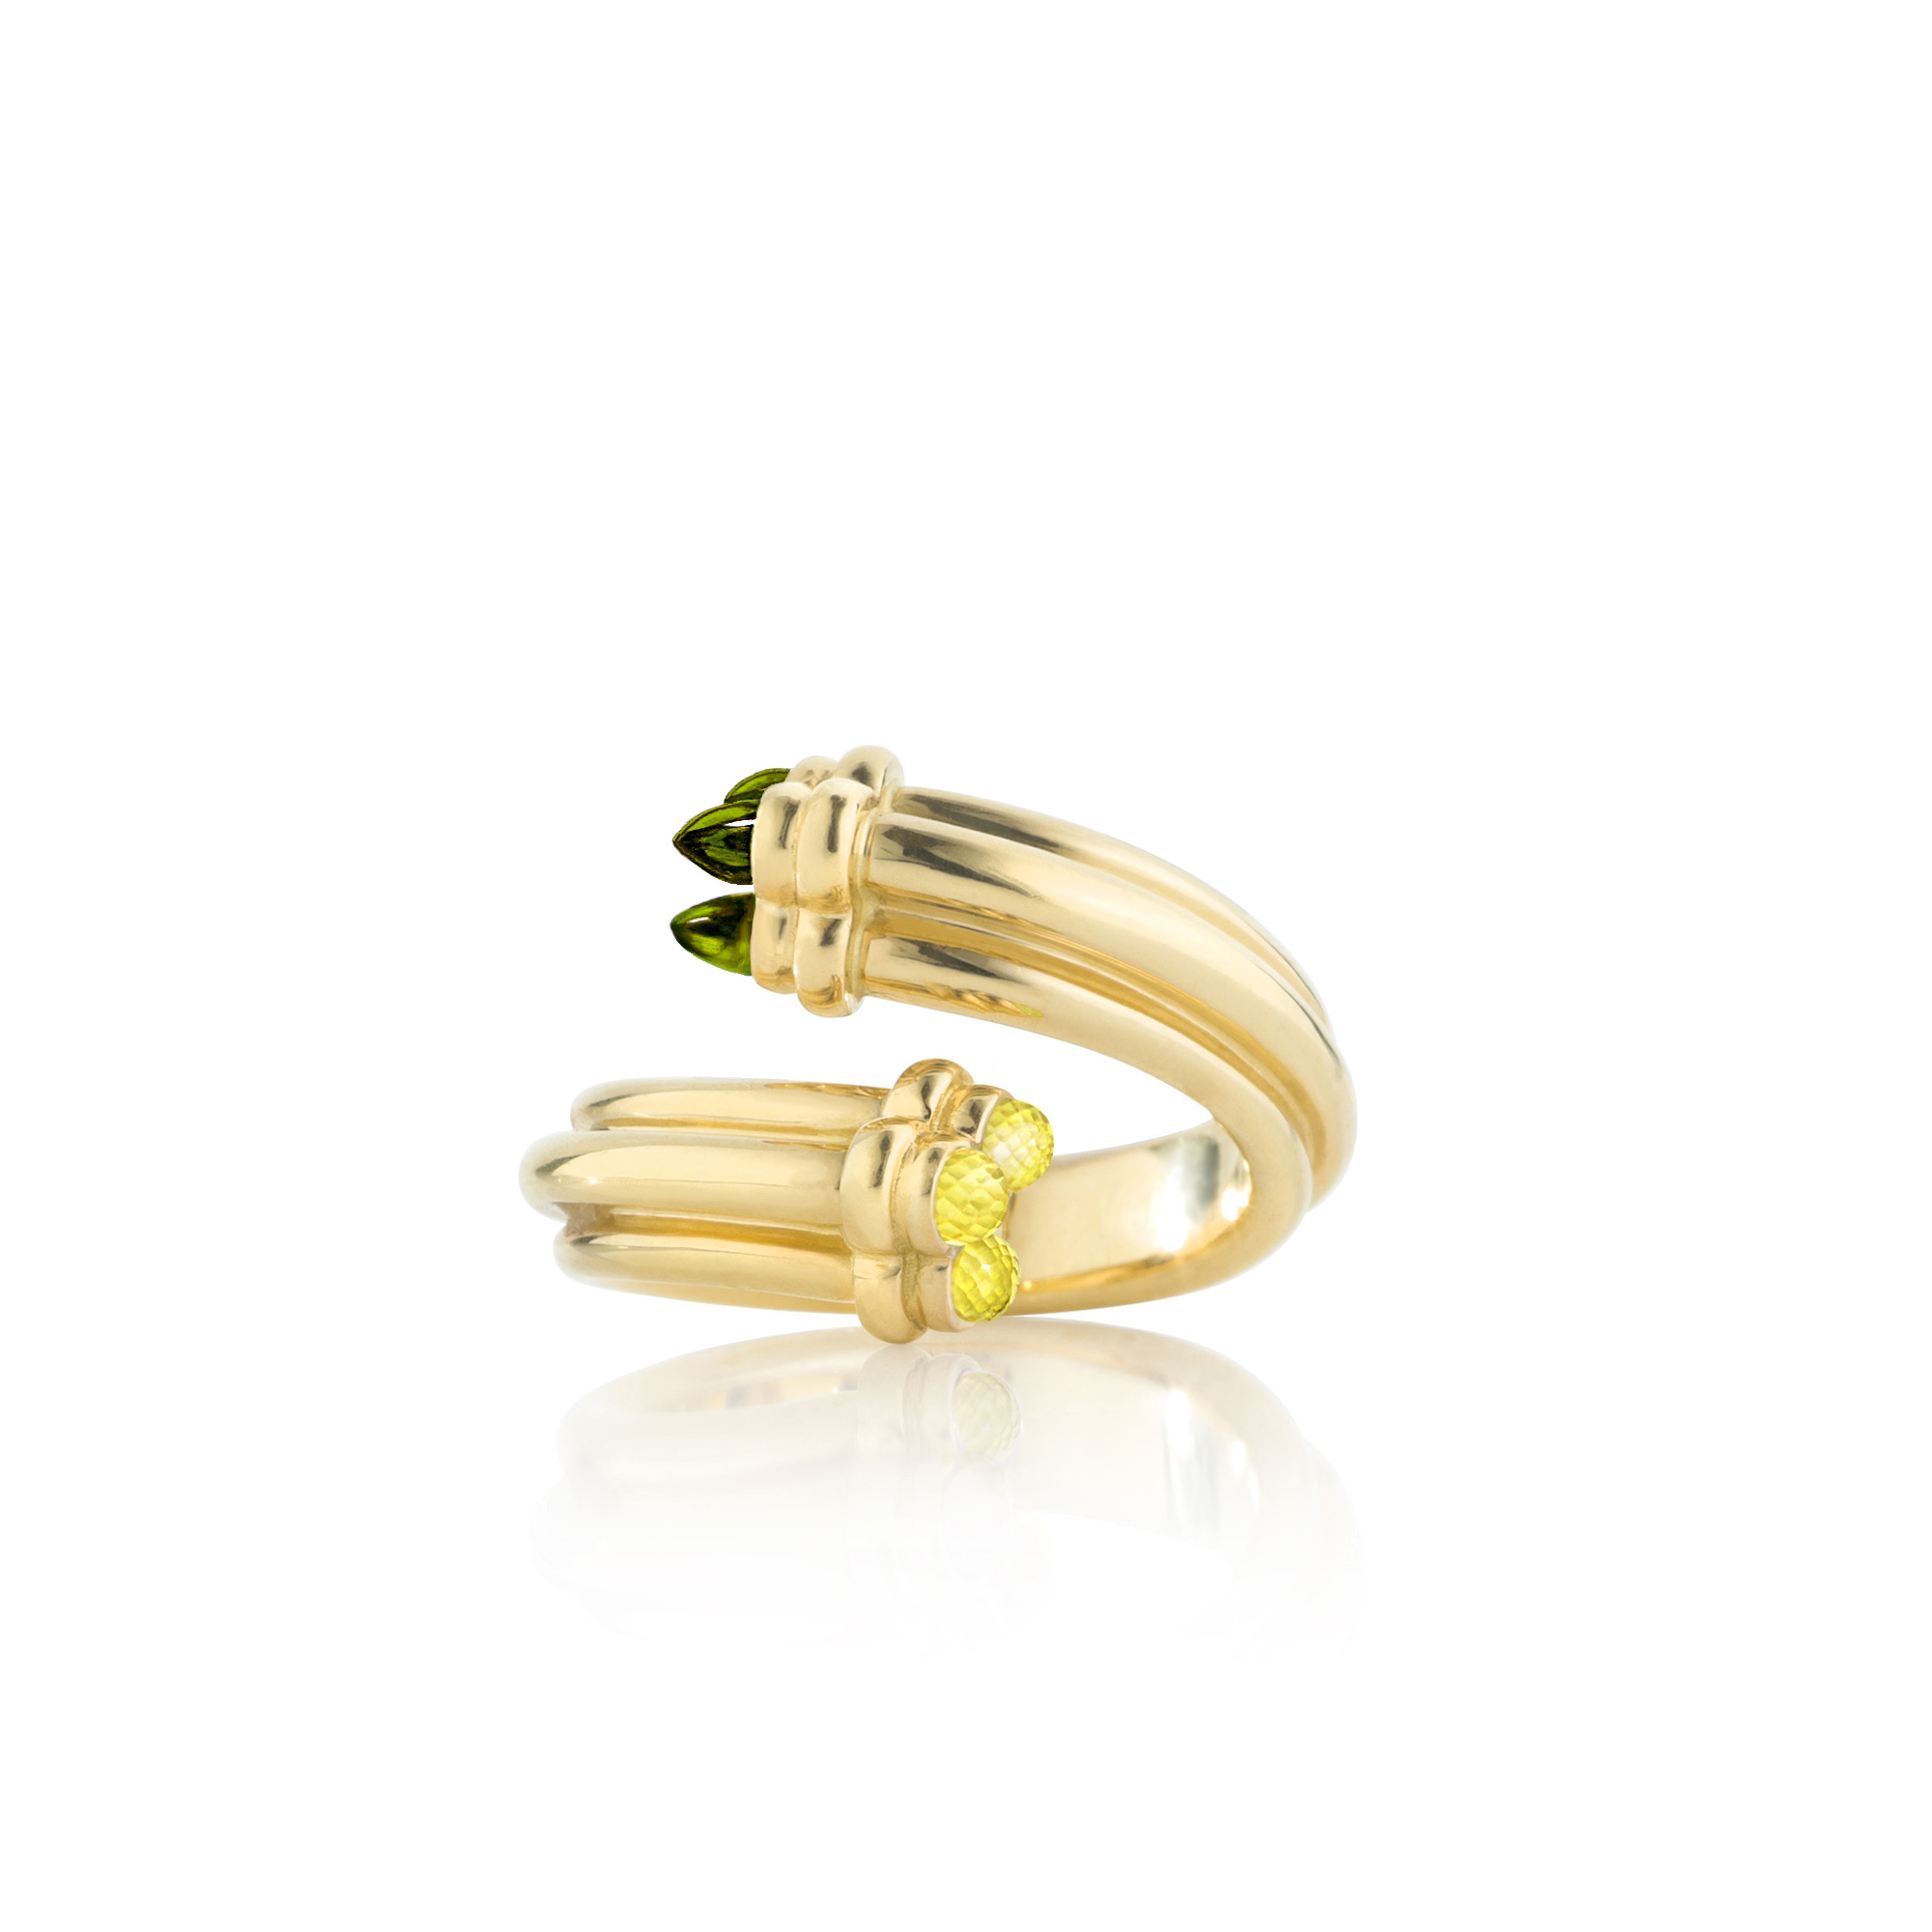 Trefoil Ring With Yellow Sapphires And Green Tourmalines